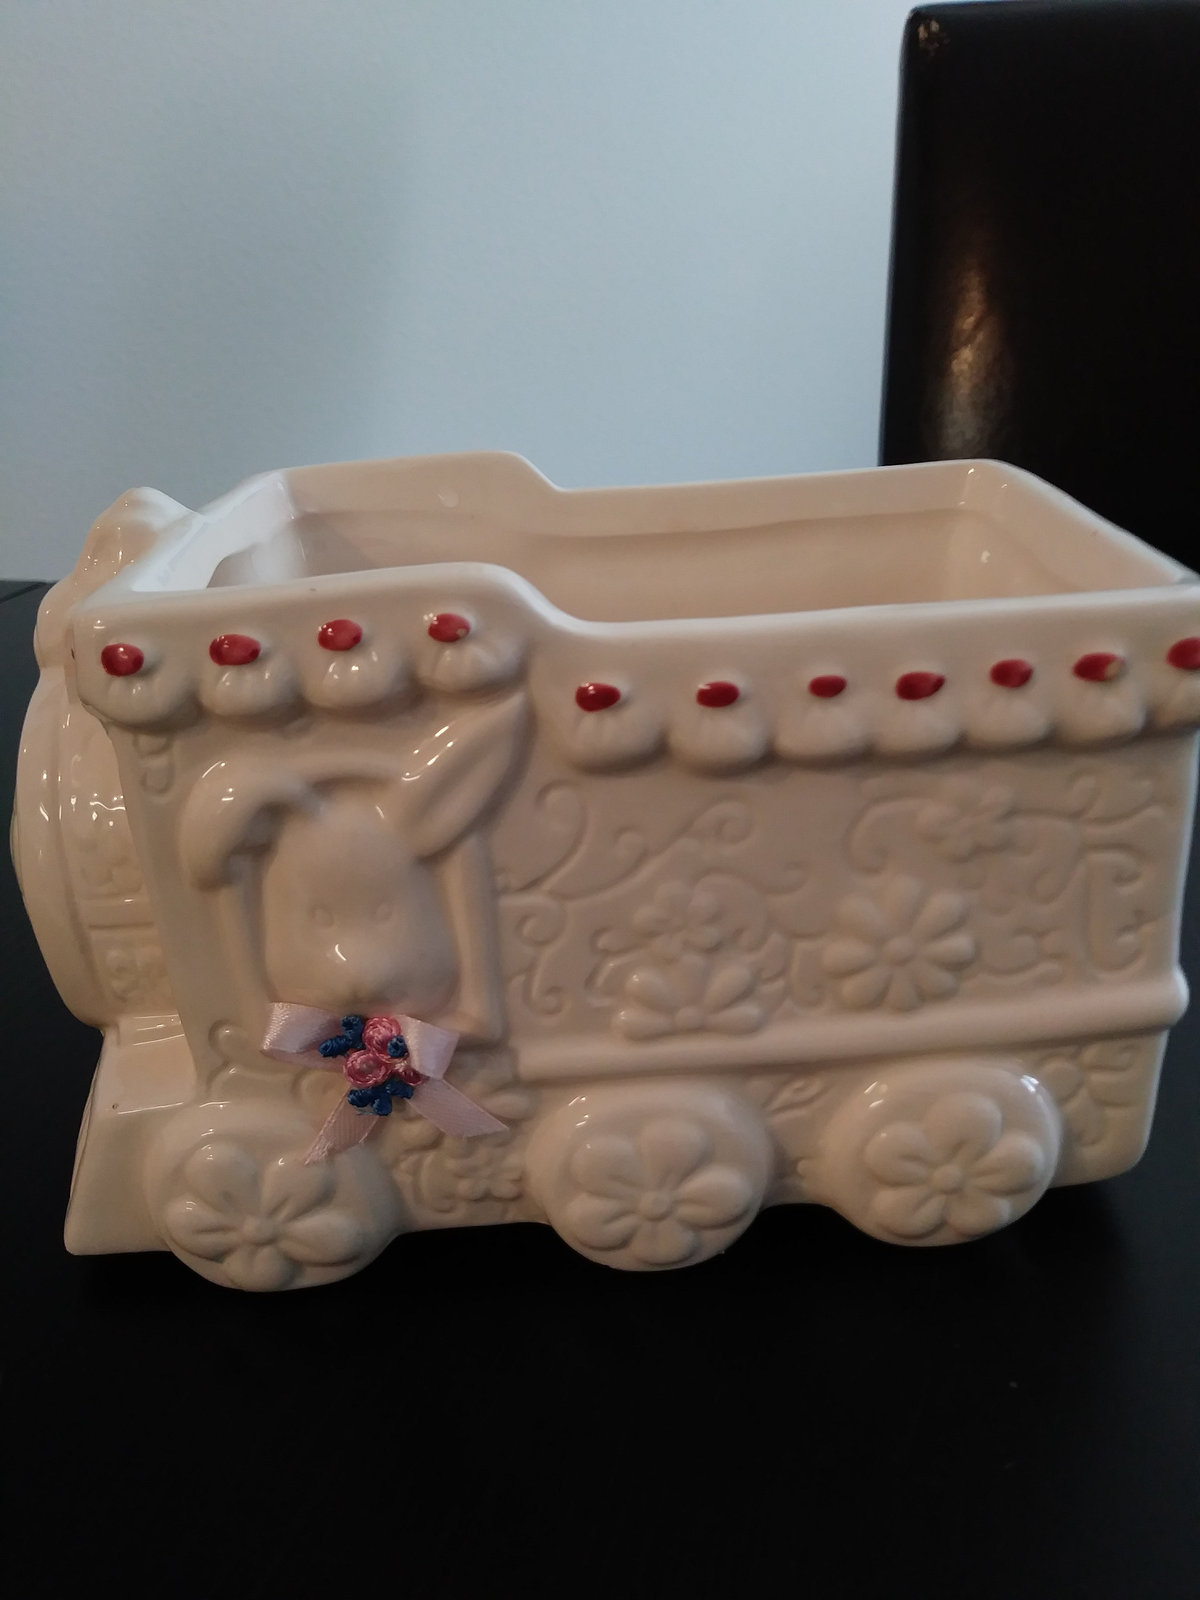 Vintage Hand Painted White Flowered Train Ceramic Planter Made in China